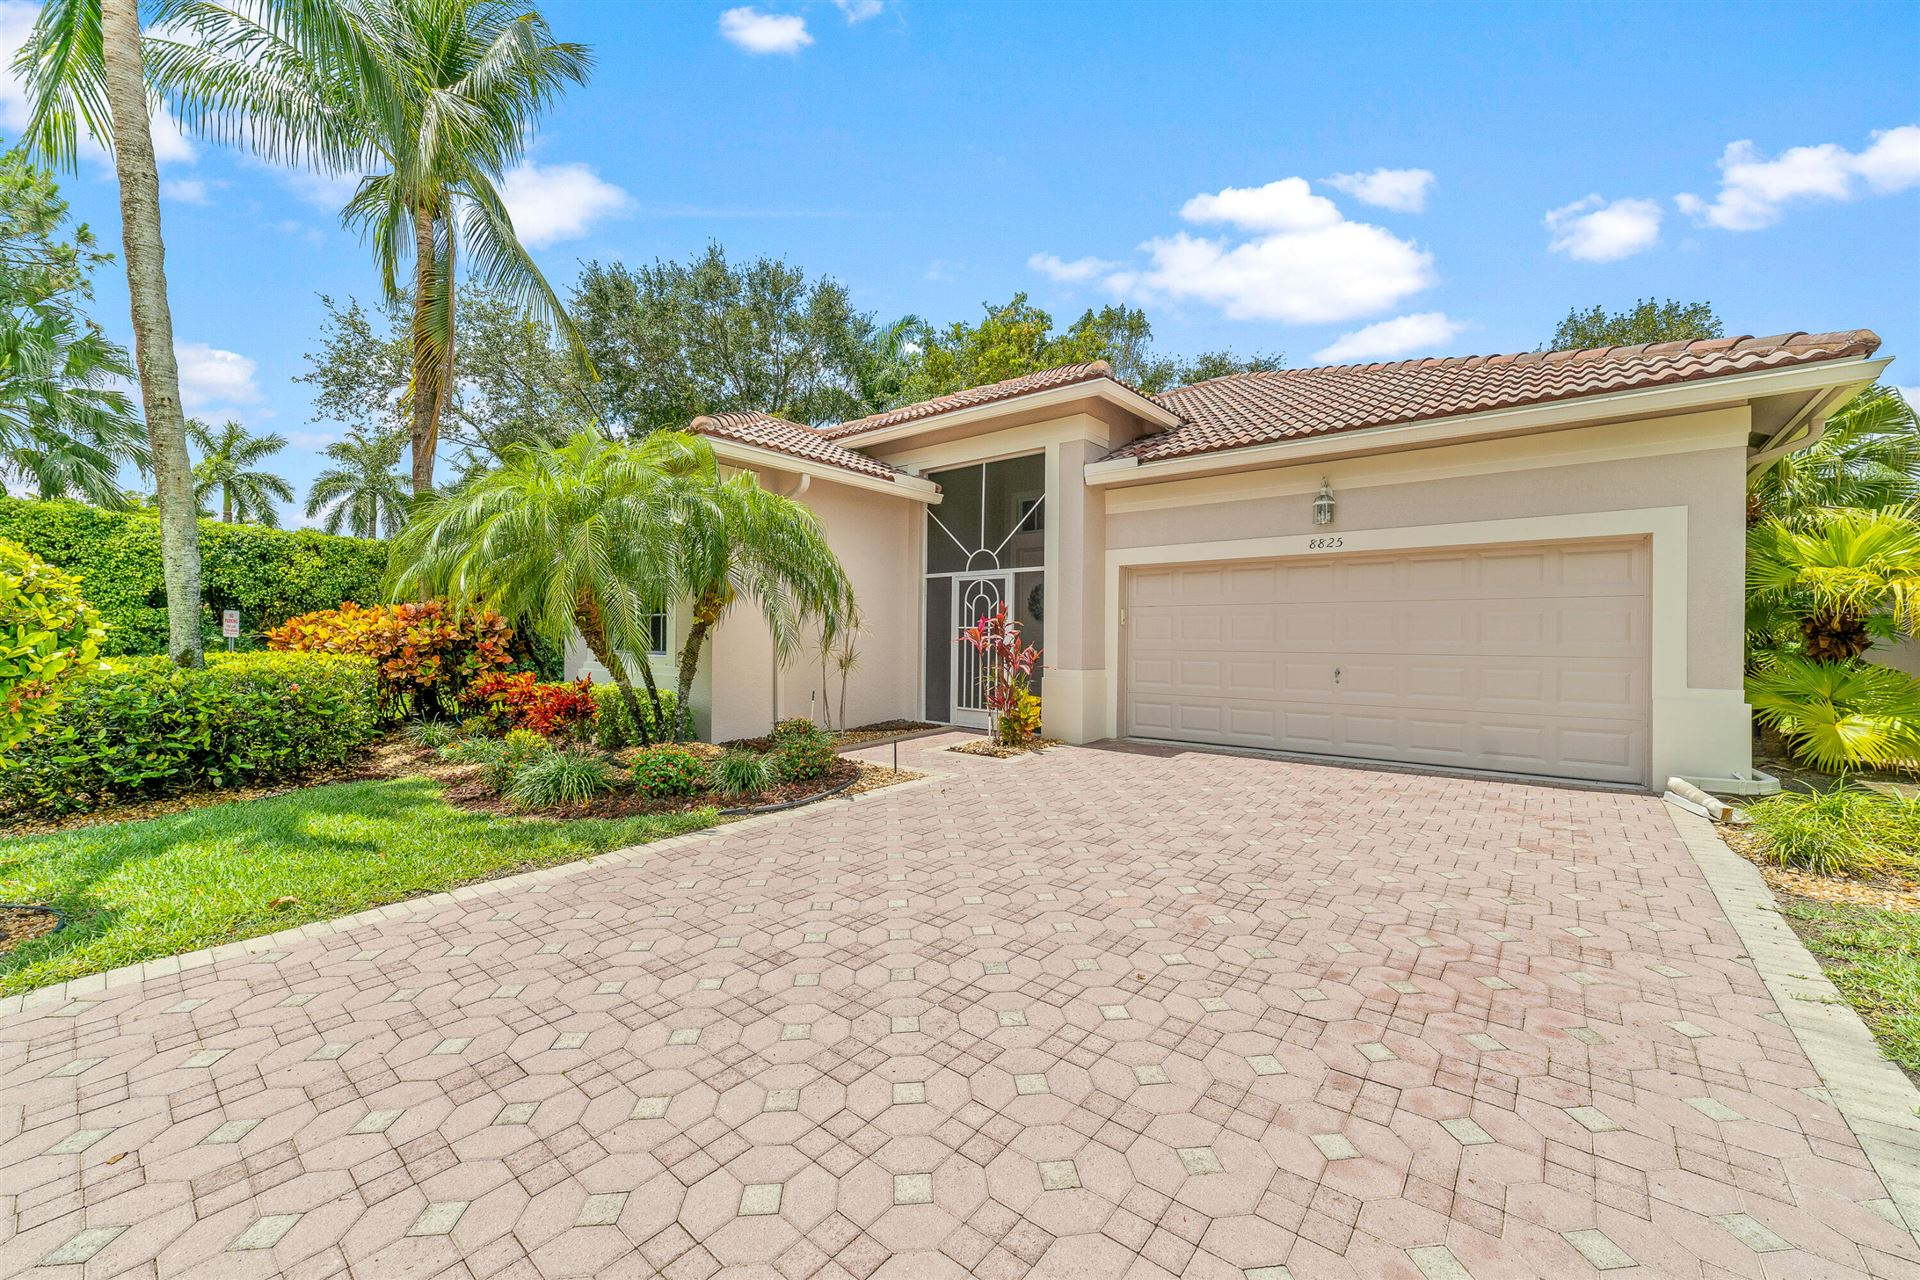 8825 Downing Street, Boynton Beach, FL 33472 - MLS#: RX-10715781